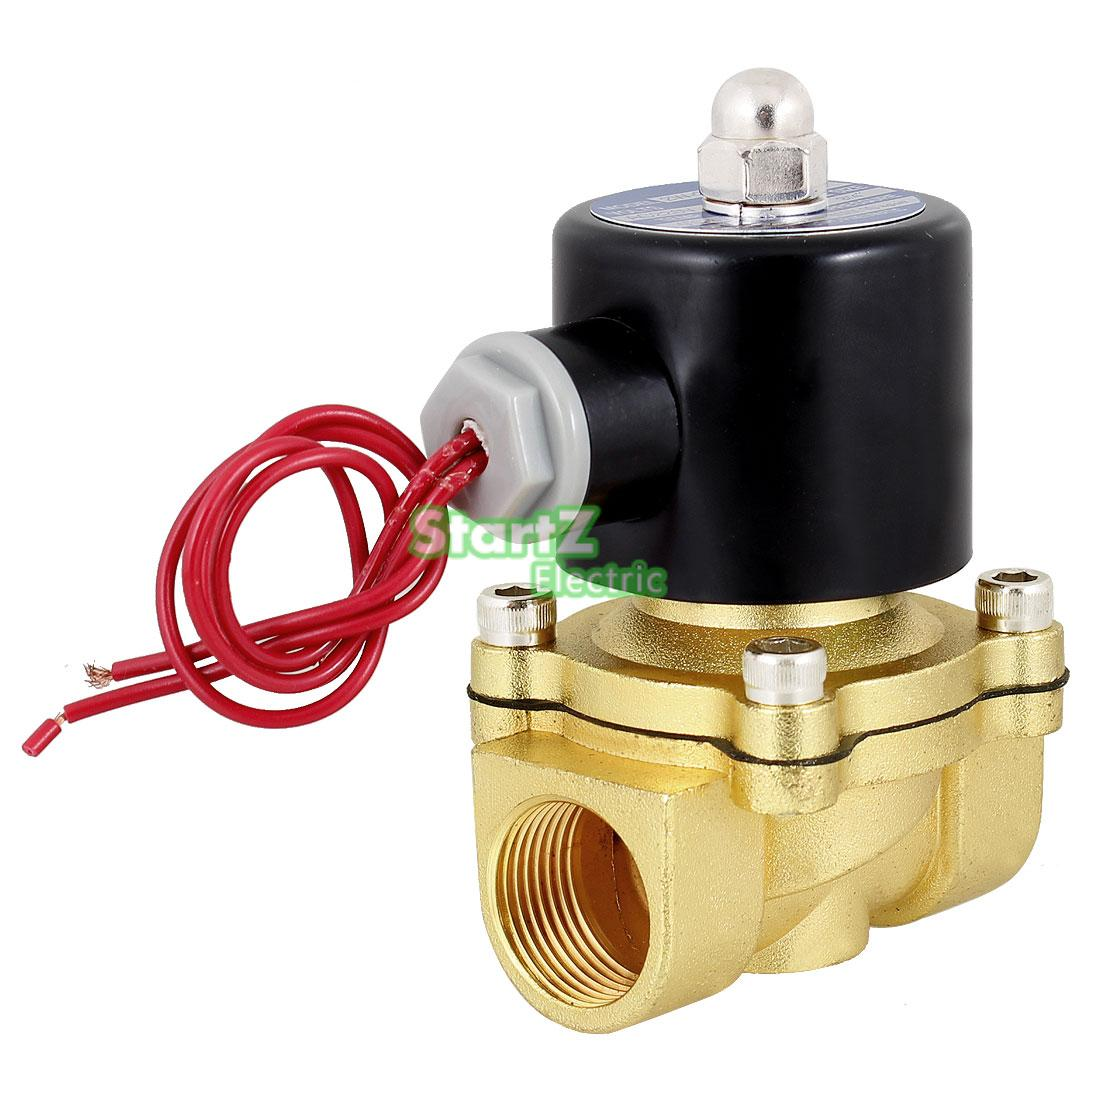 1/2 Inch Electric Air Gas Water Solenoid Valve Normally Closed DC12V DC24V AC110V AC220V 2w 025 06 2 way brass air gas water solenoid valve 1 8 bsp normal close dc12v dc24v ac110v ac220v